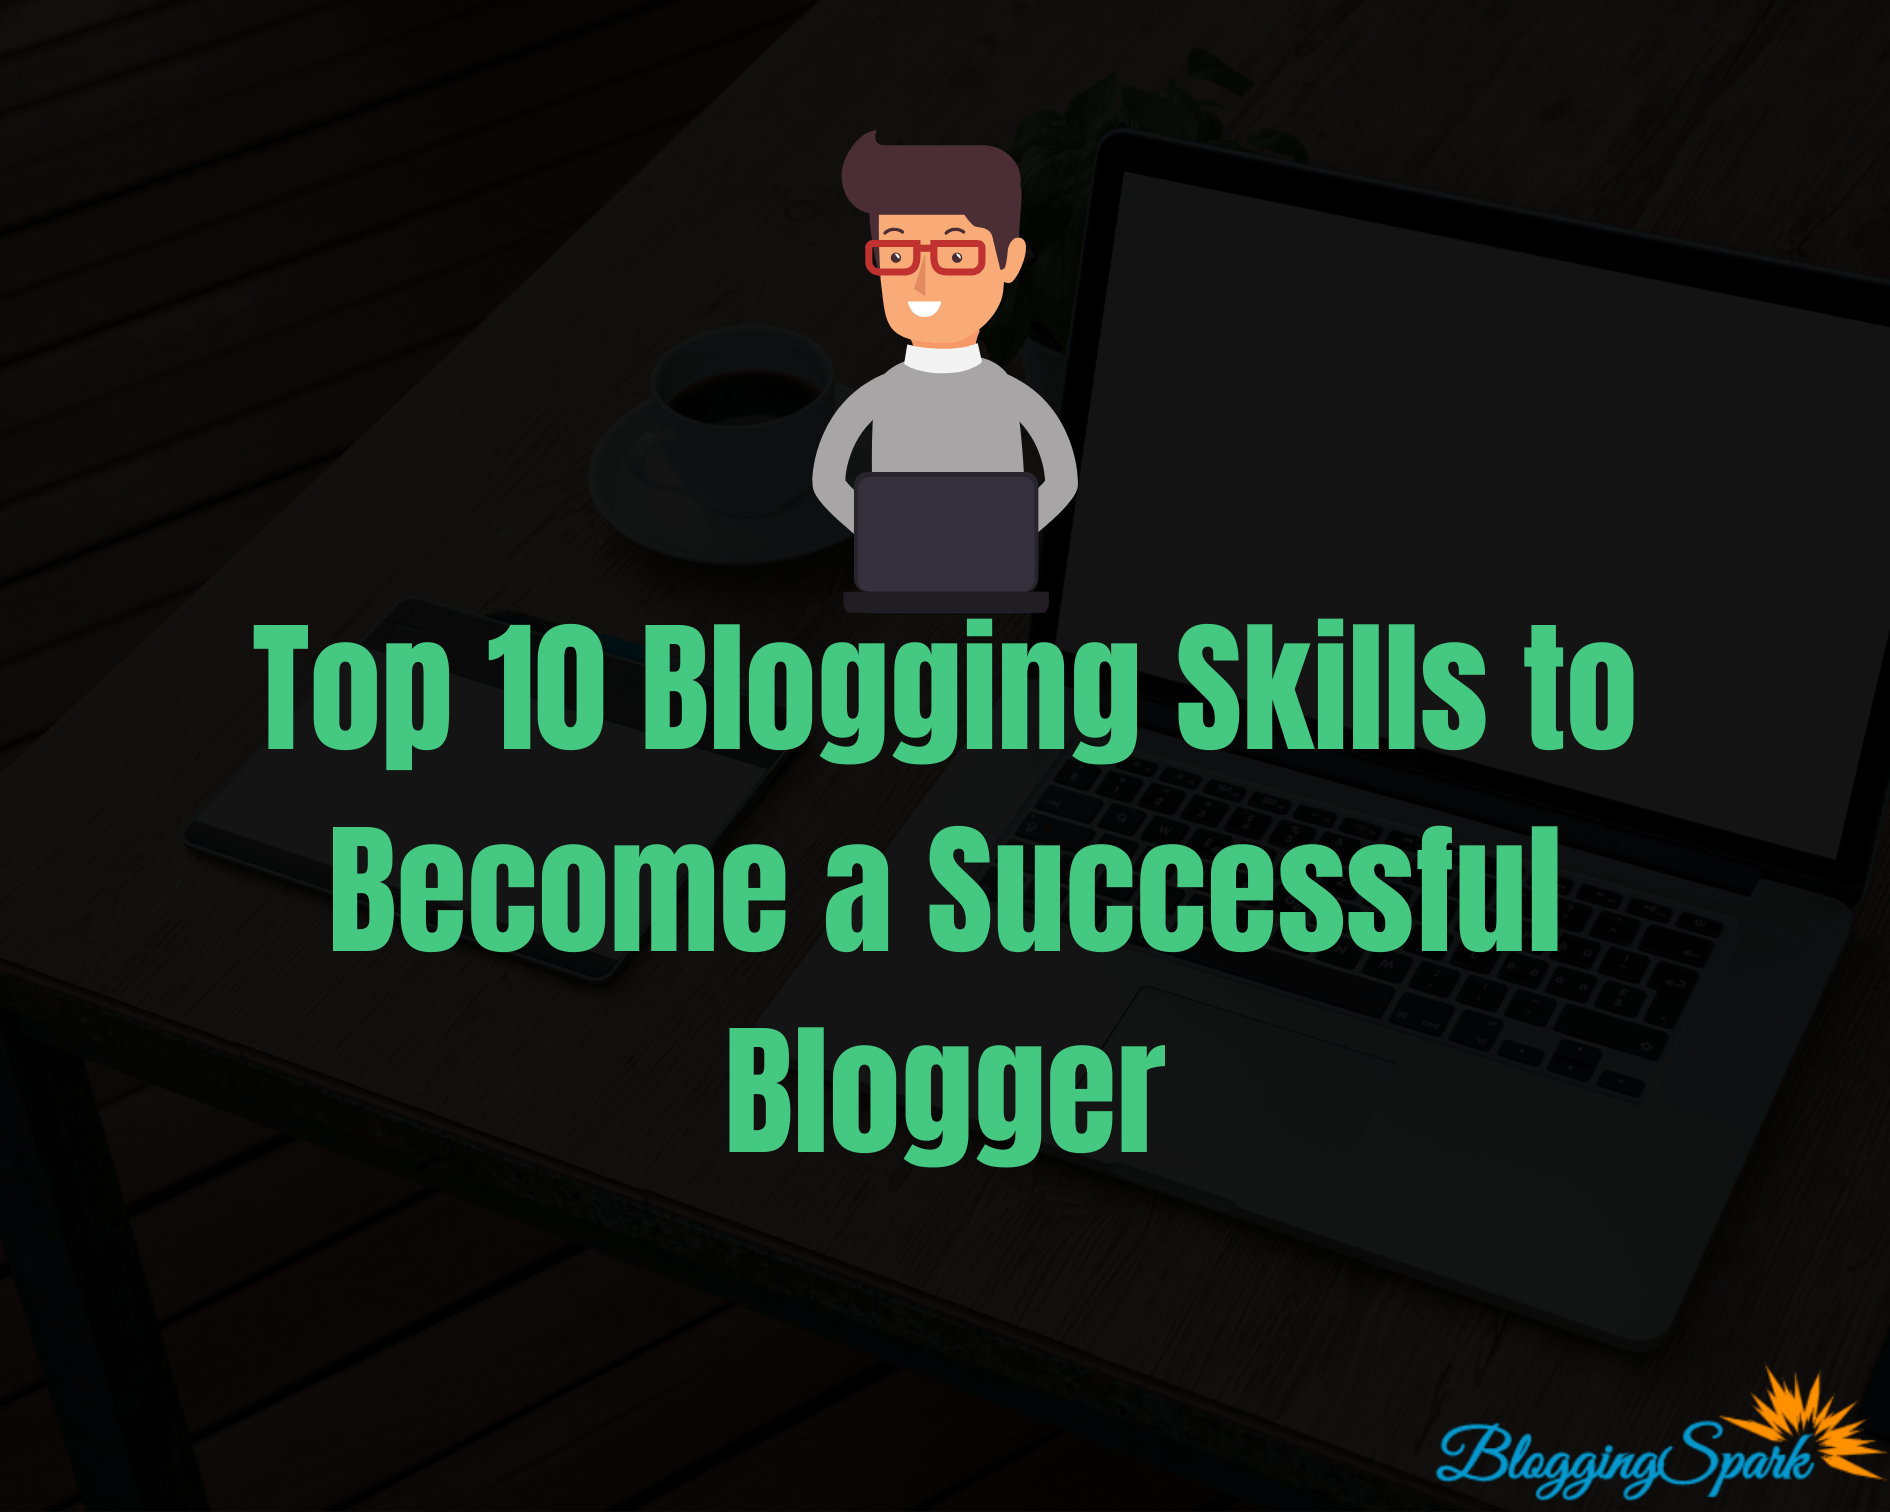 Top 10 Blogging Skills to Become a Successful Blogger in 2020